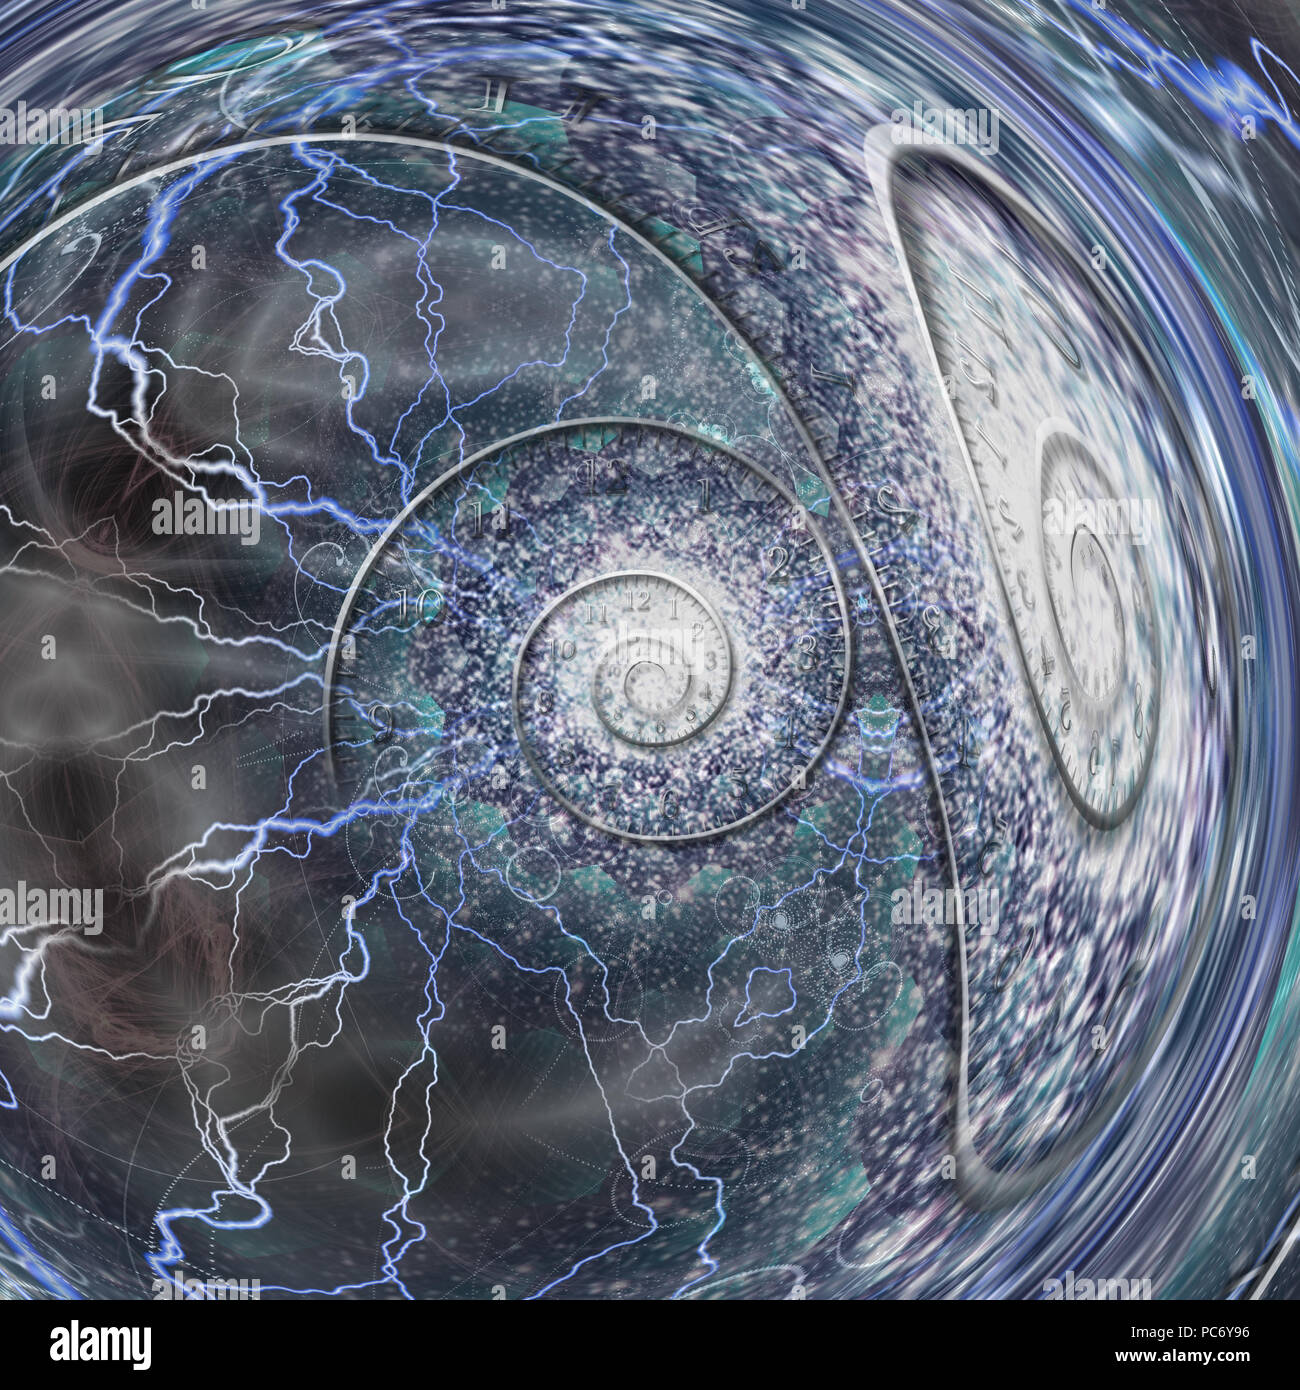 Spiral of time. 3D rendering - Stock Image